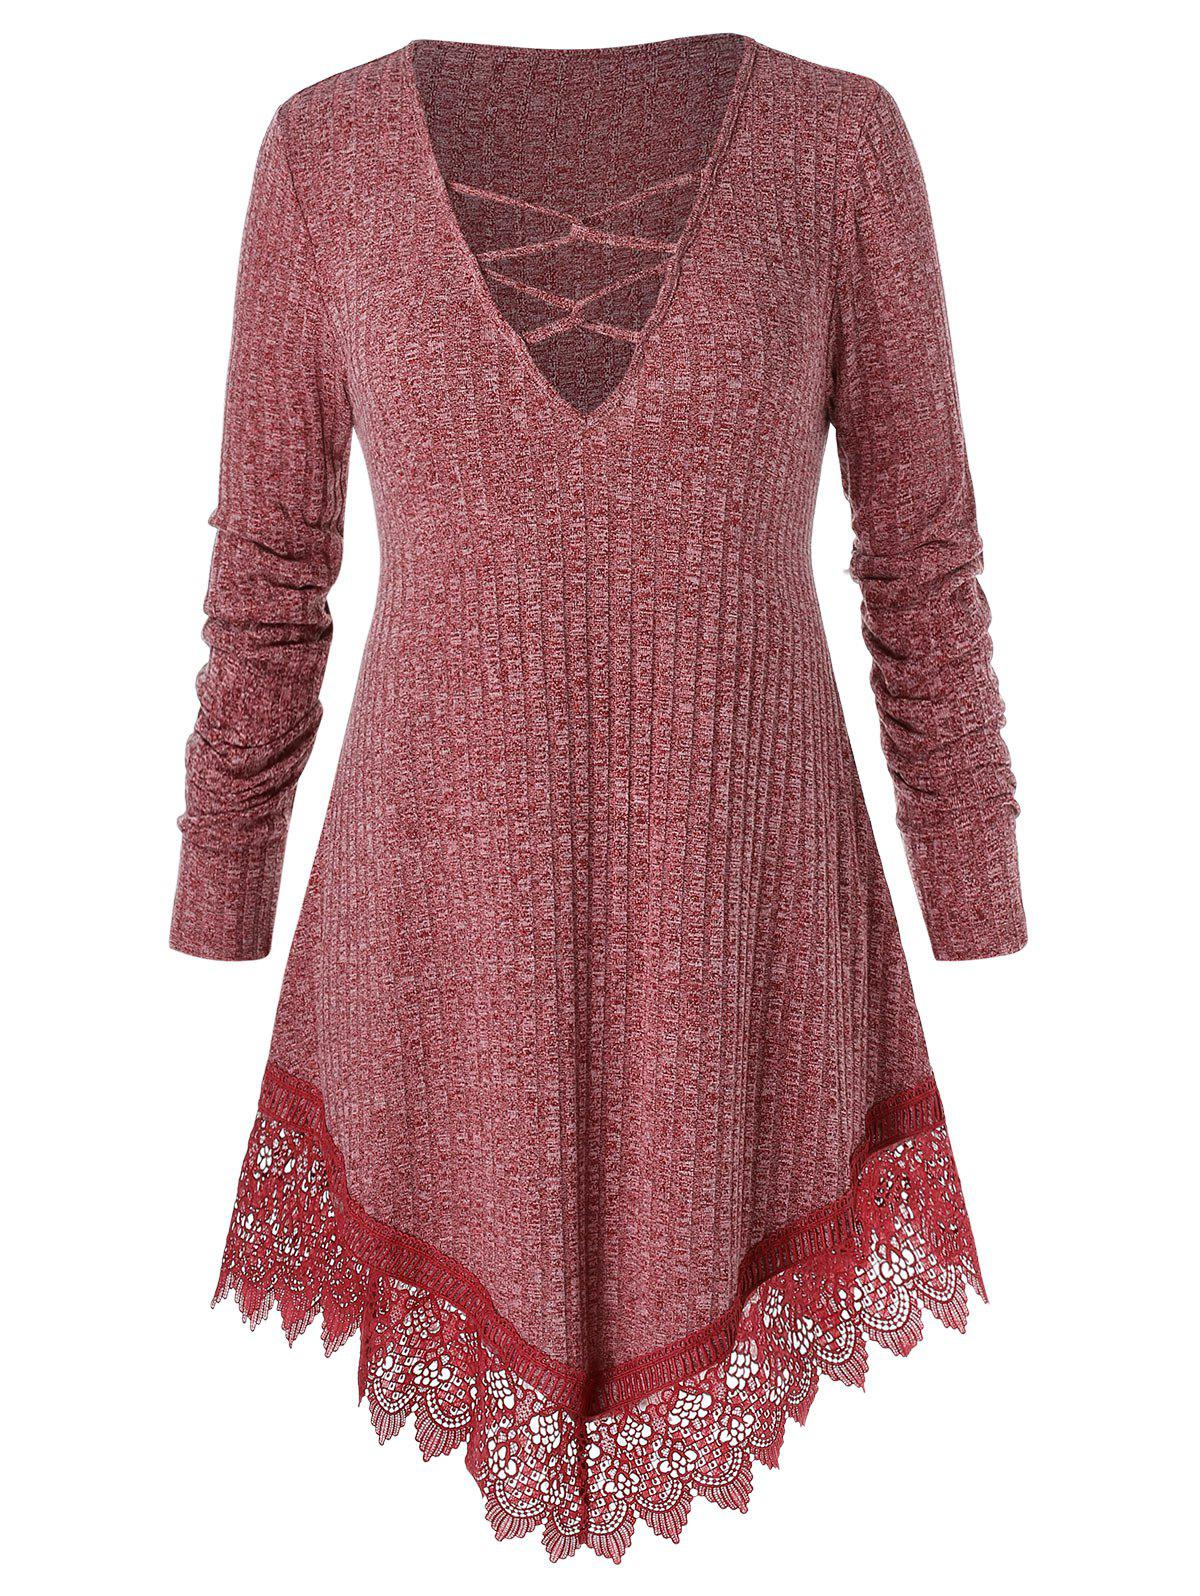 Plus Size Plunge Lace Insert Criss Cross Sweater Rosegal